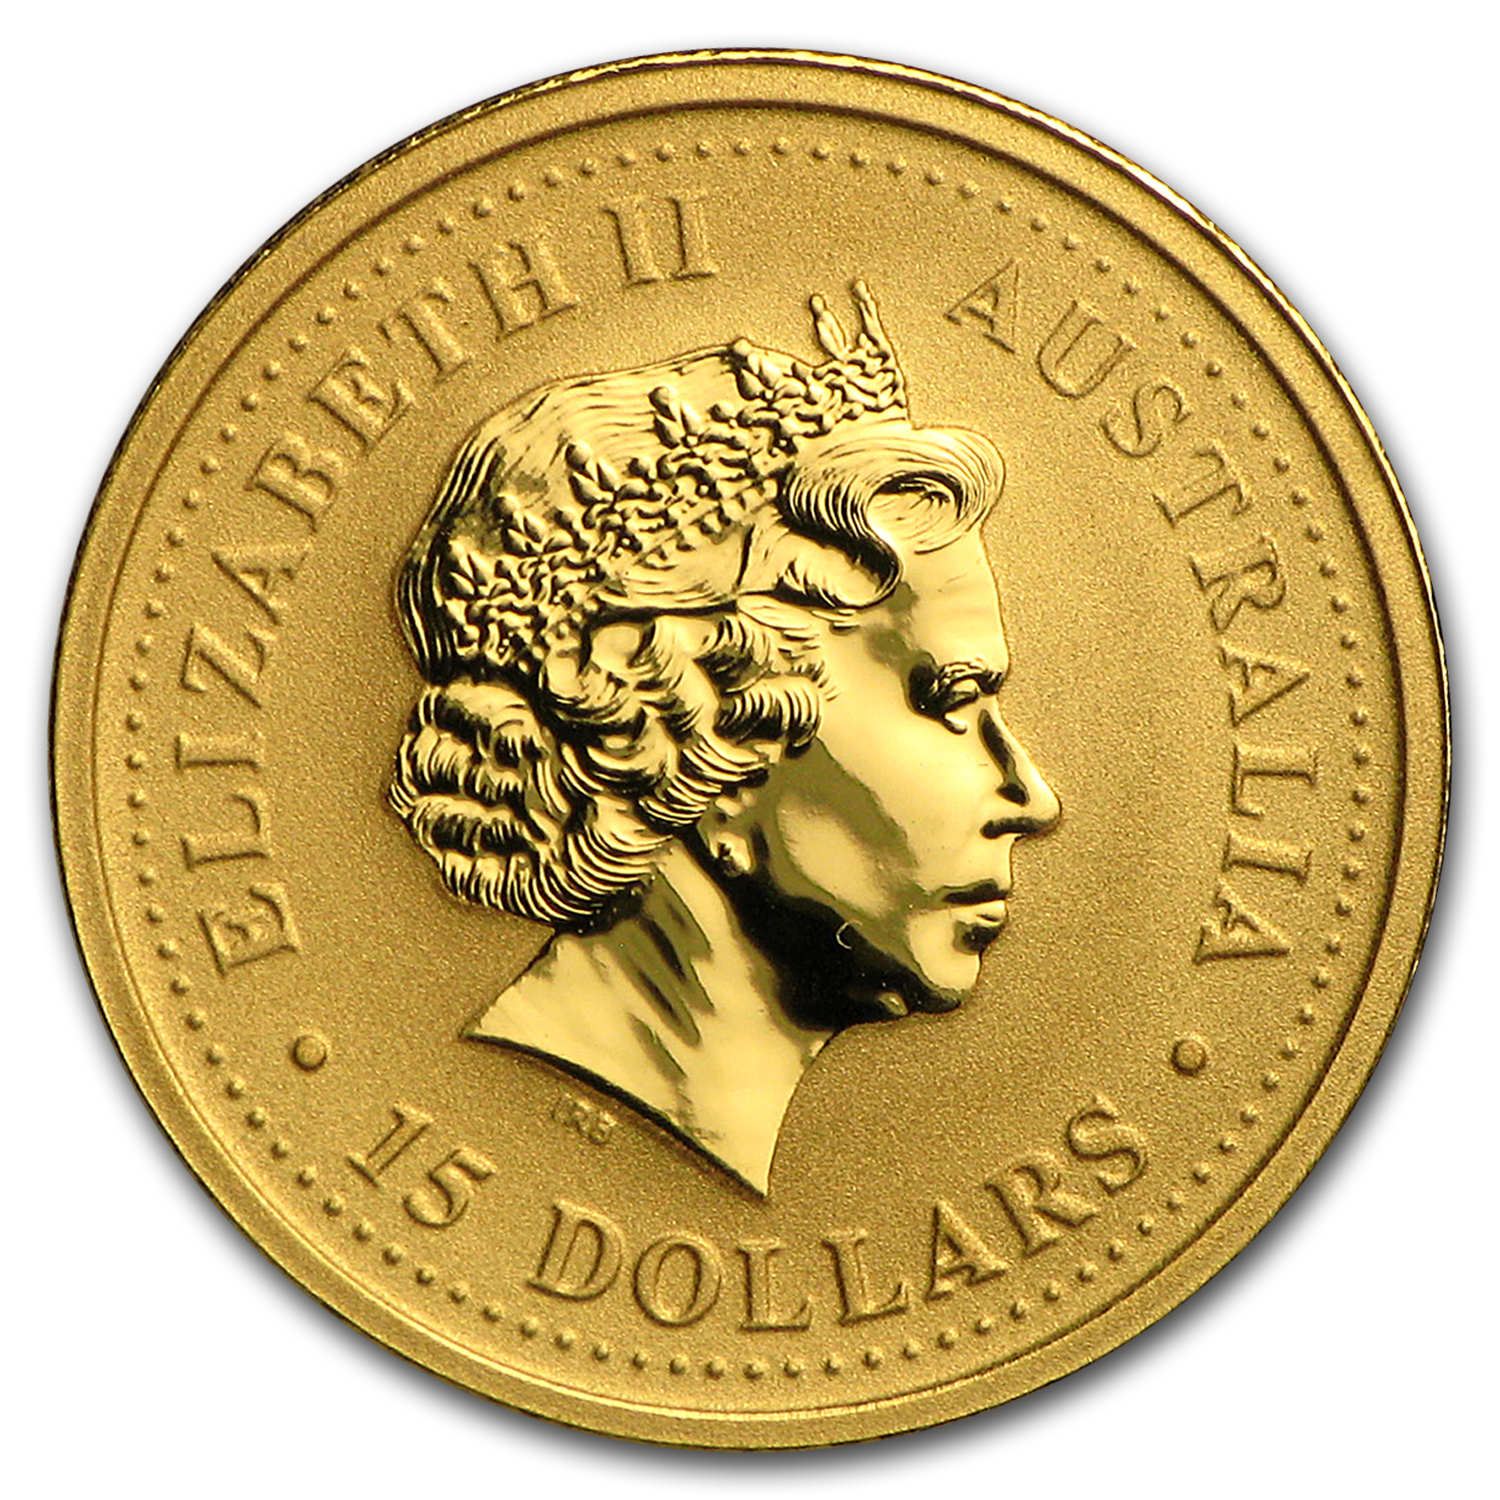 2006 Australia 1/10 oz Gold Nugget